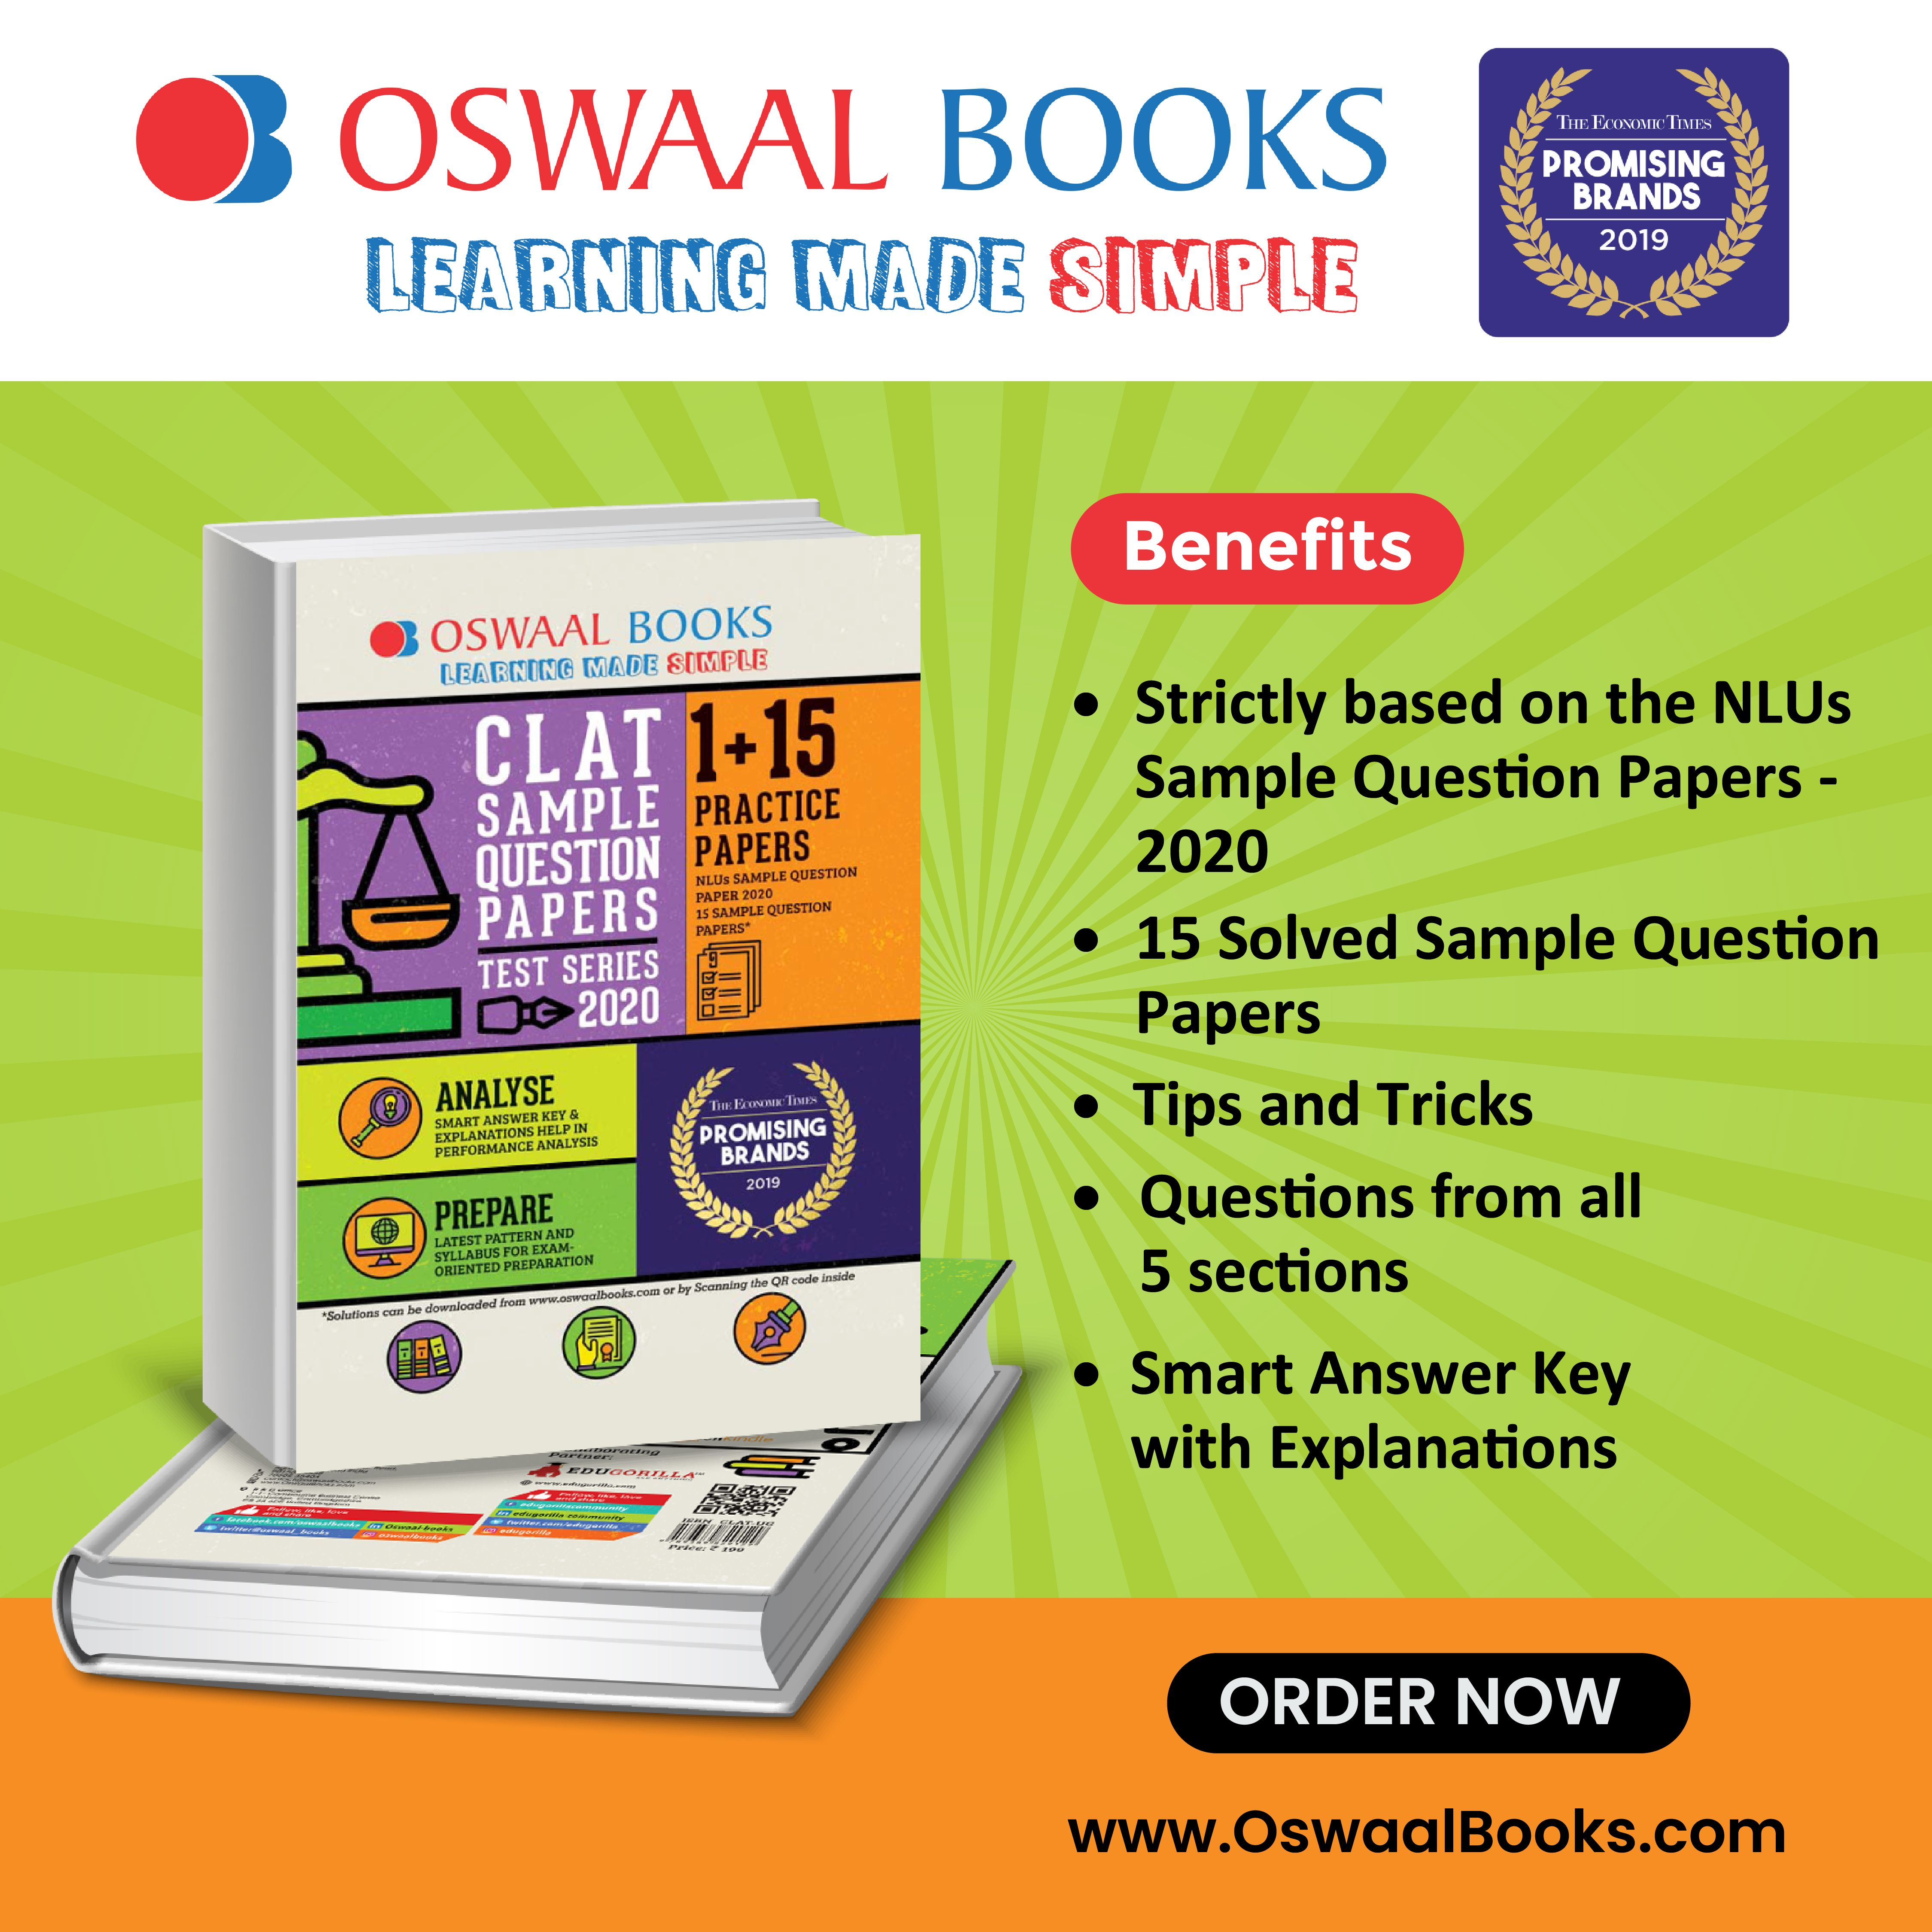 Are You Looking For Clat Sample Papers As Per The Latest Pattern And Syllabus Of The Nlus Oswaal Clat Samp In 2020 Sample Question Paper Question Paper Sample Paper